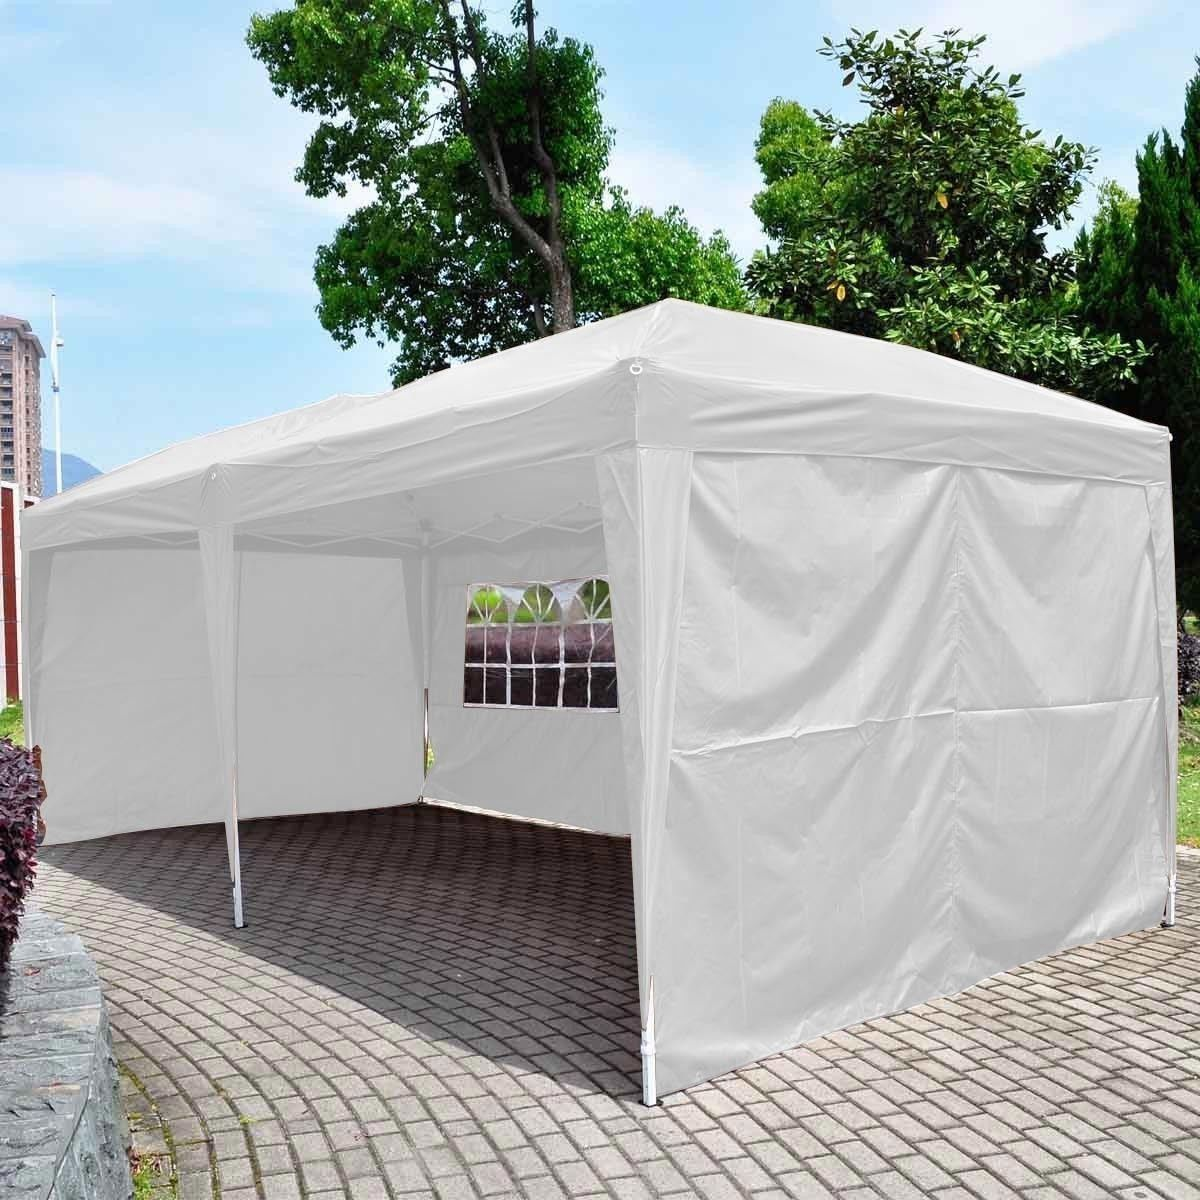 Giantex 10 X20 Ez Pop Up Wedding Party Tent Folding Gazebo Beach Canopy W Carry Bag White Beach Canopy Gazebo Party Tent